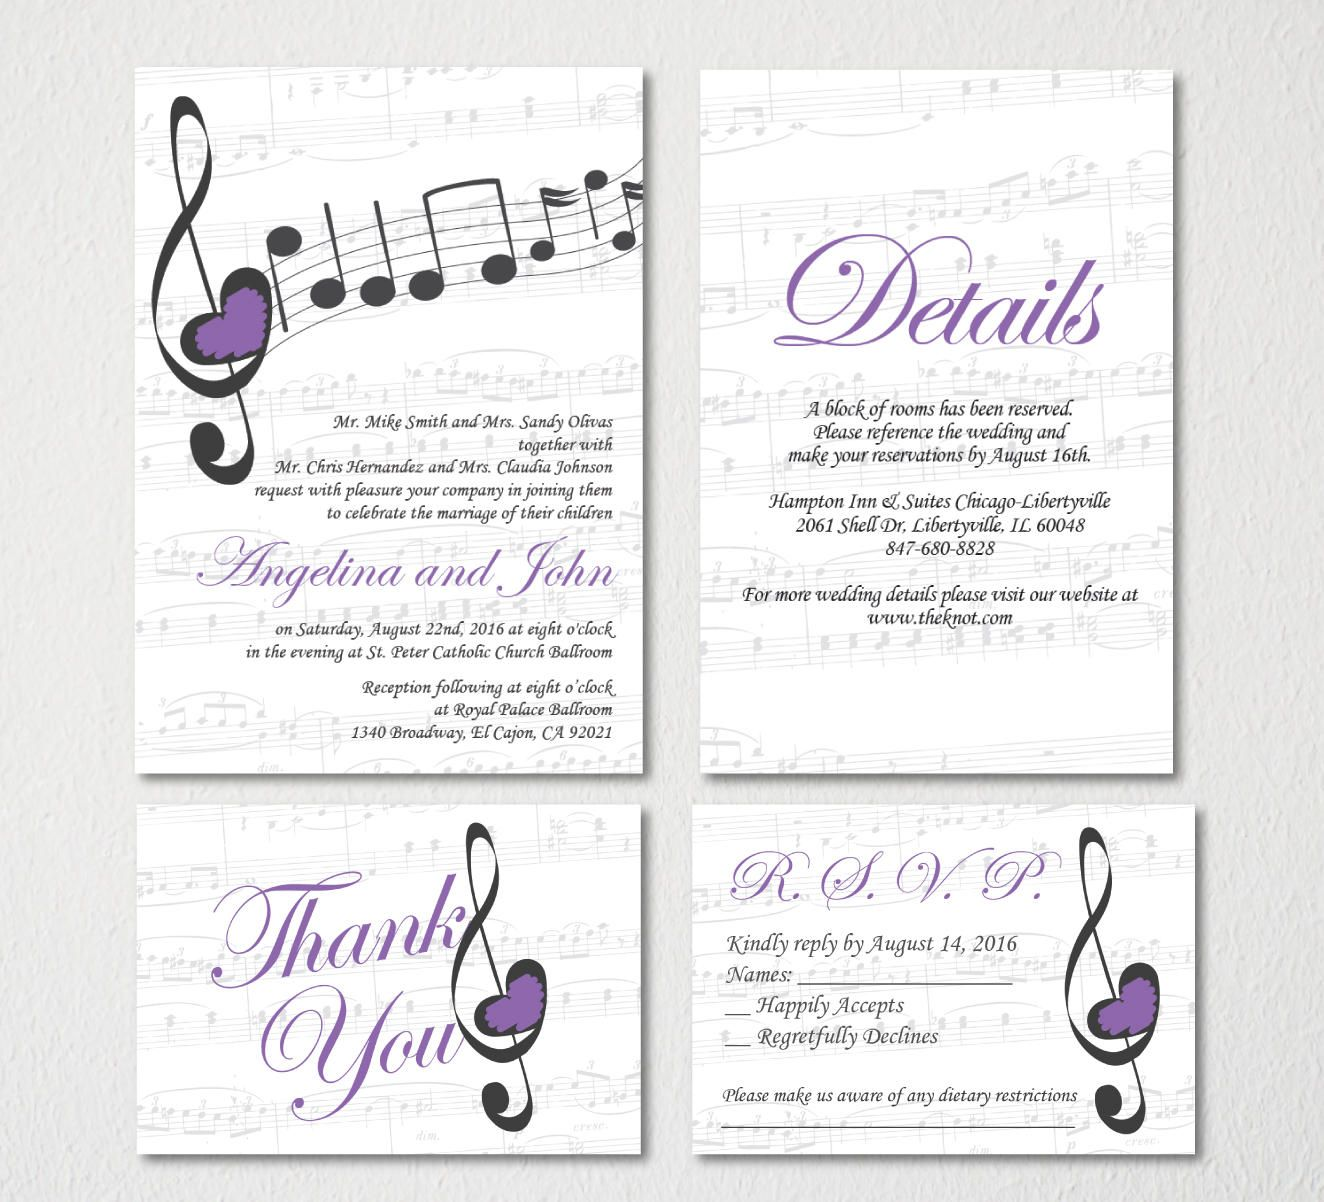 Music Wedding Invitation Printable Template/Vintage/E-card Wedding Invitation Template/Engagement Announcement/RSVP/Thank You Card/Spanish by ...